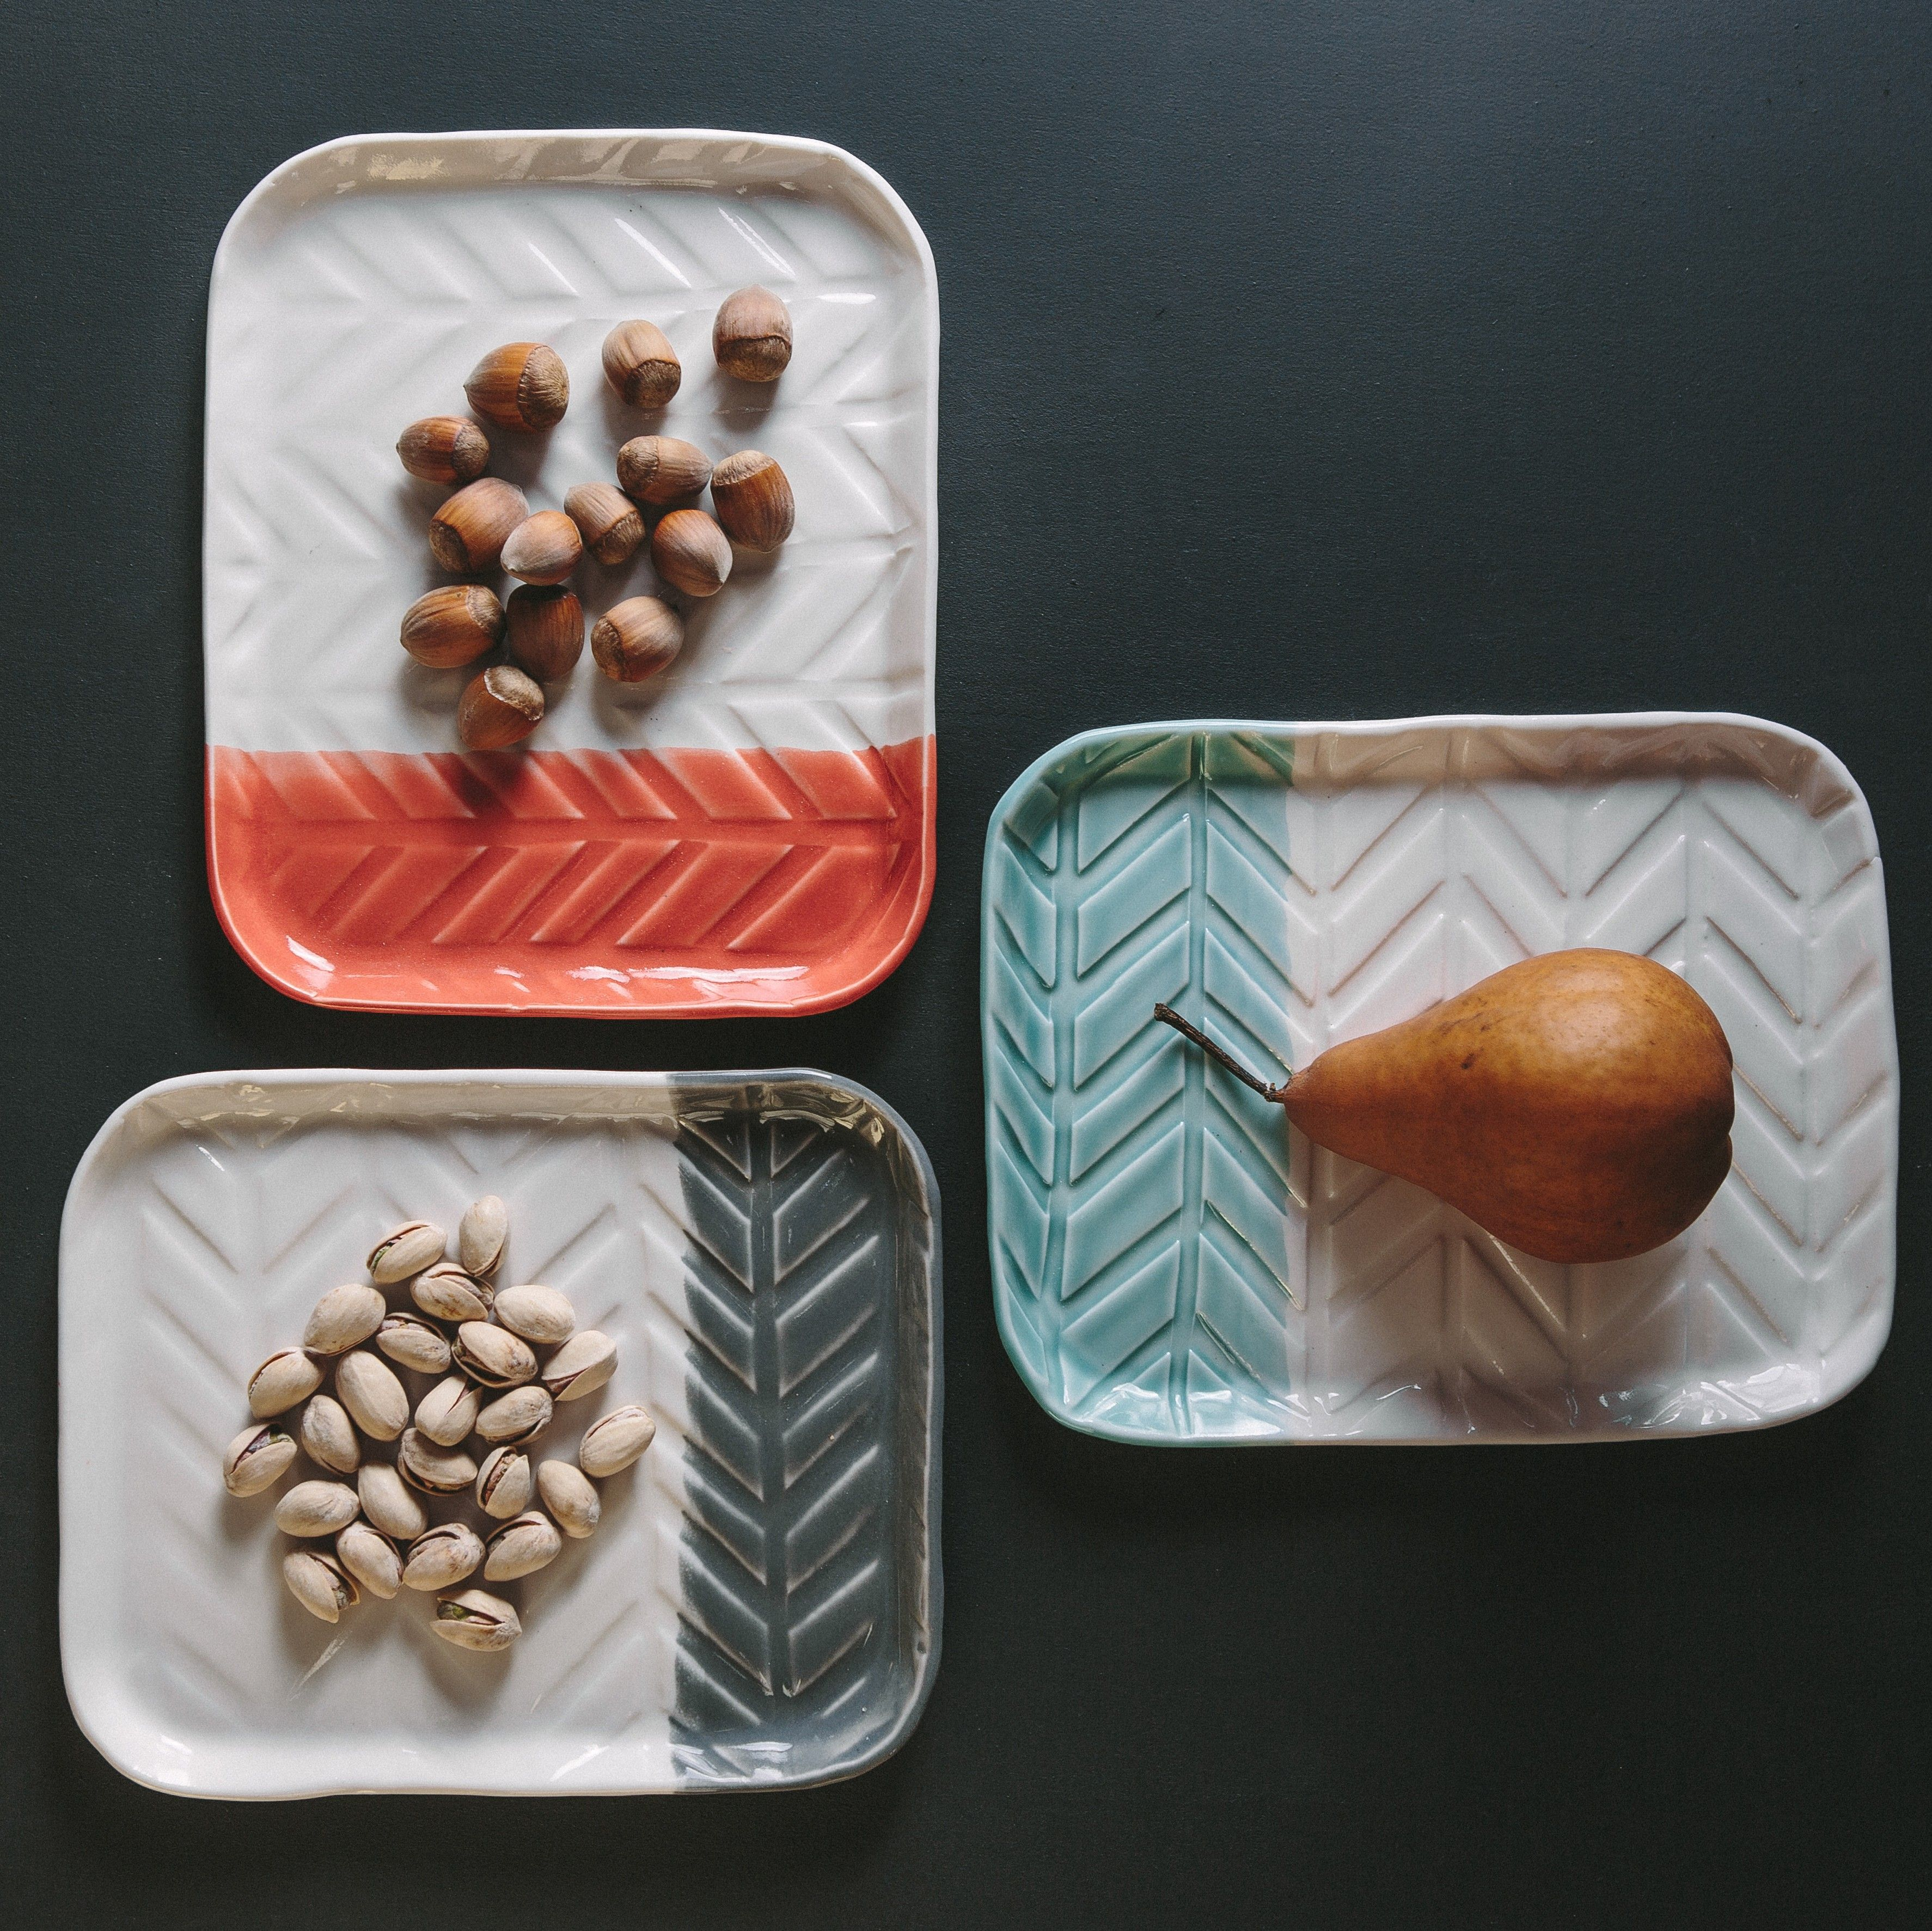 Herringbone Tray (More Colors) on @BRIKA  These trays so fun and versatile.  Definitely ordering one of the beauties!